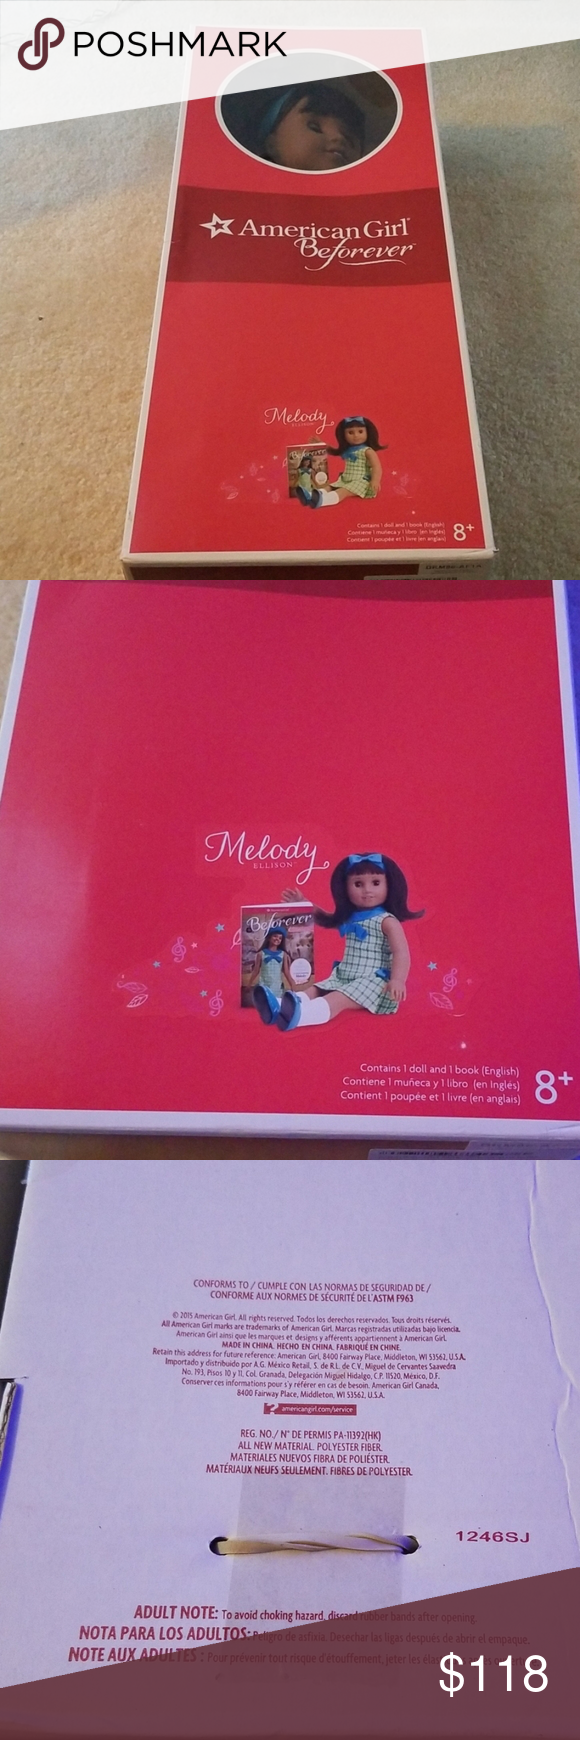 American Girl Doll American Girl Be Forever Doll Melody Ellison Contains 1 doll ...